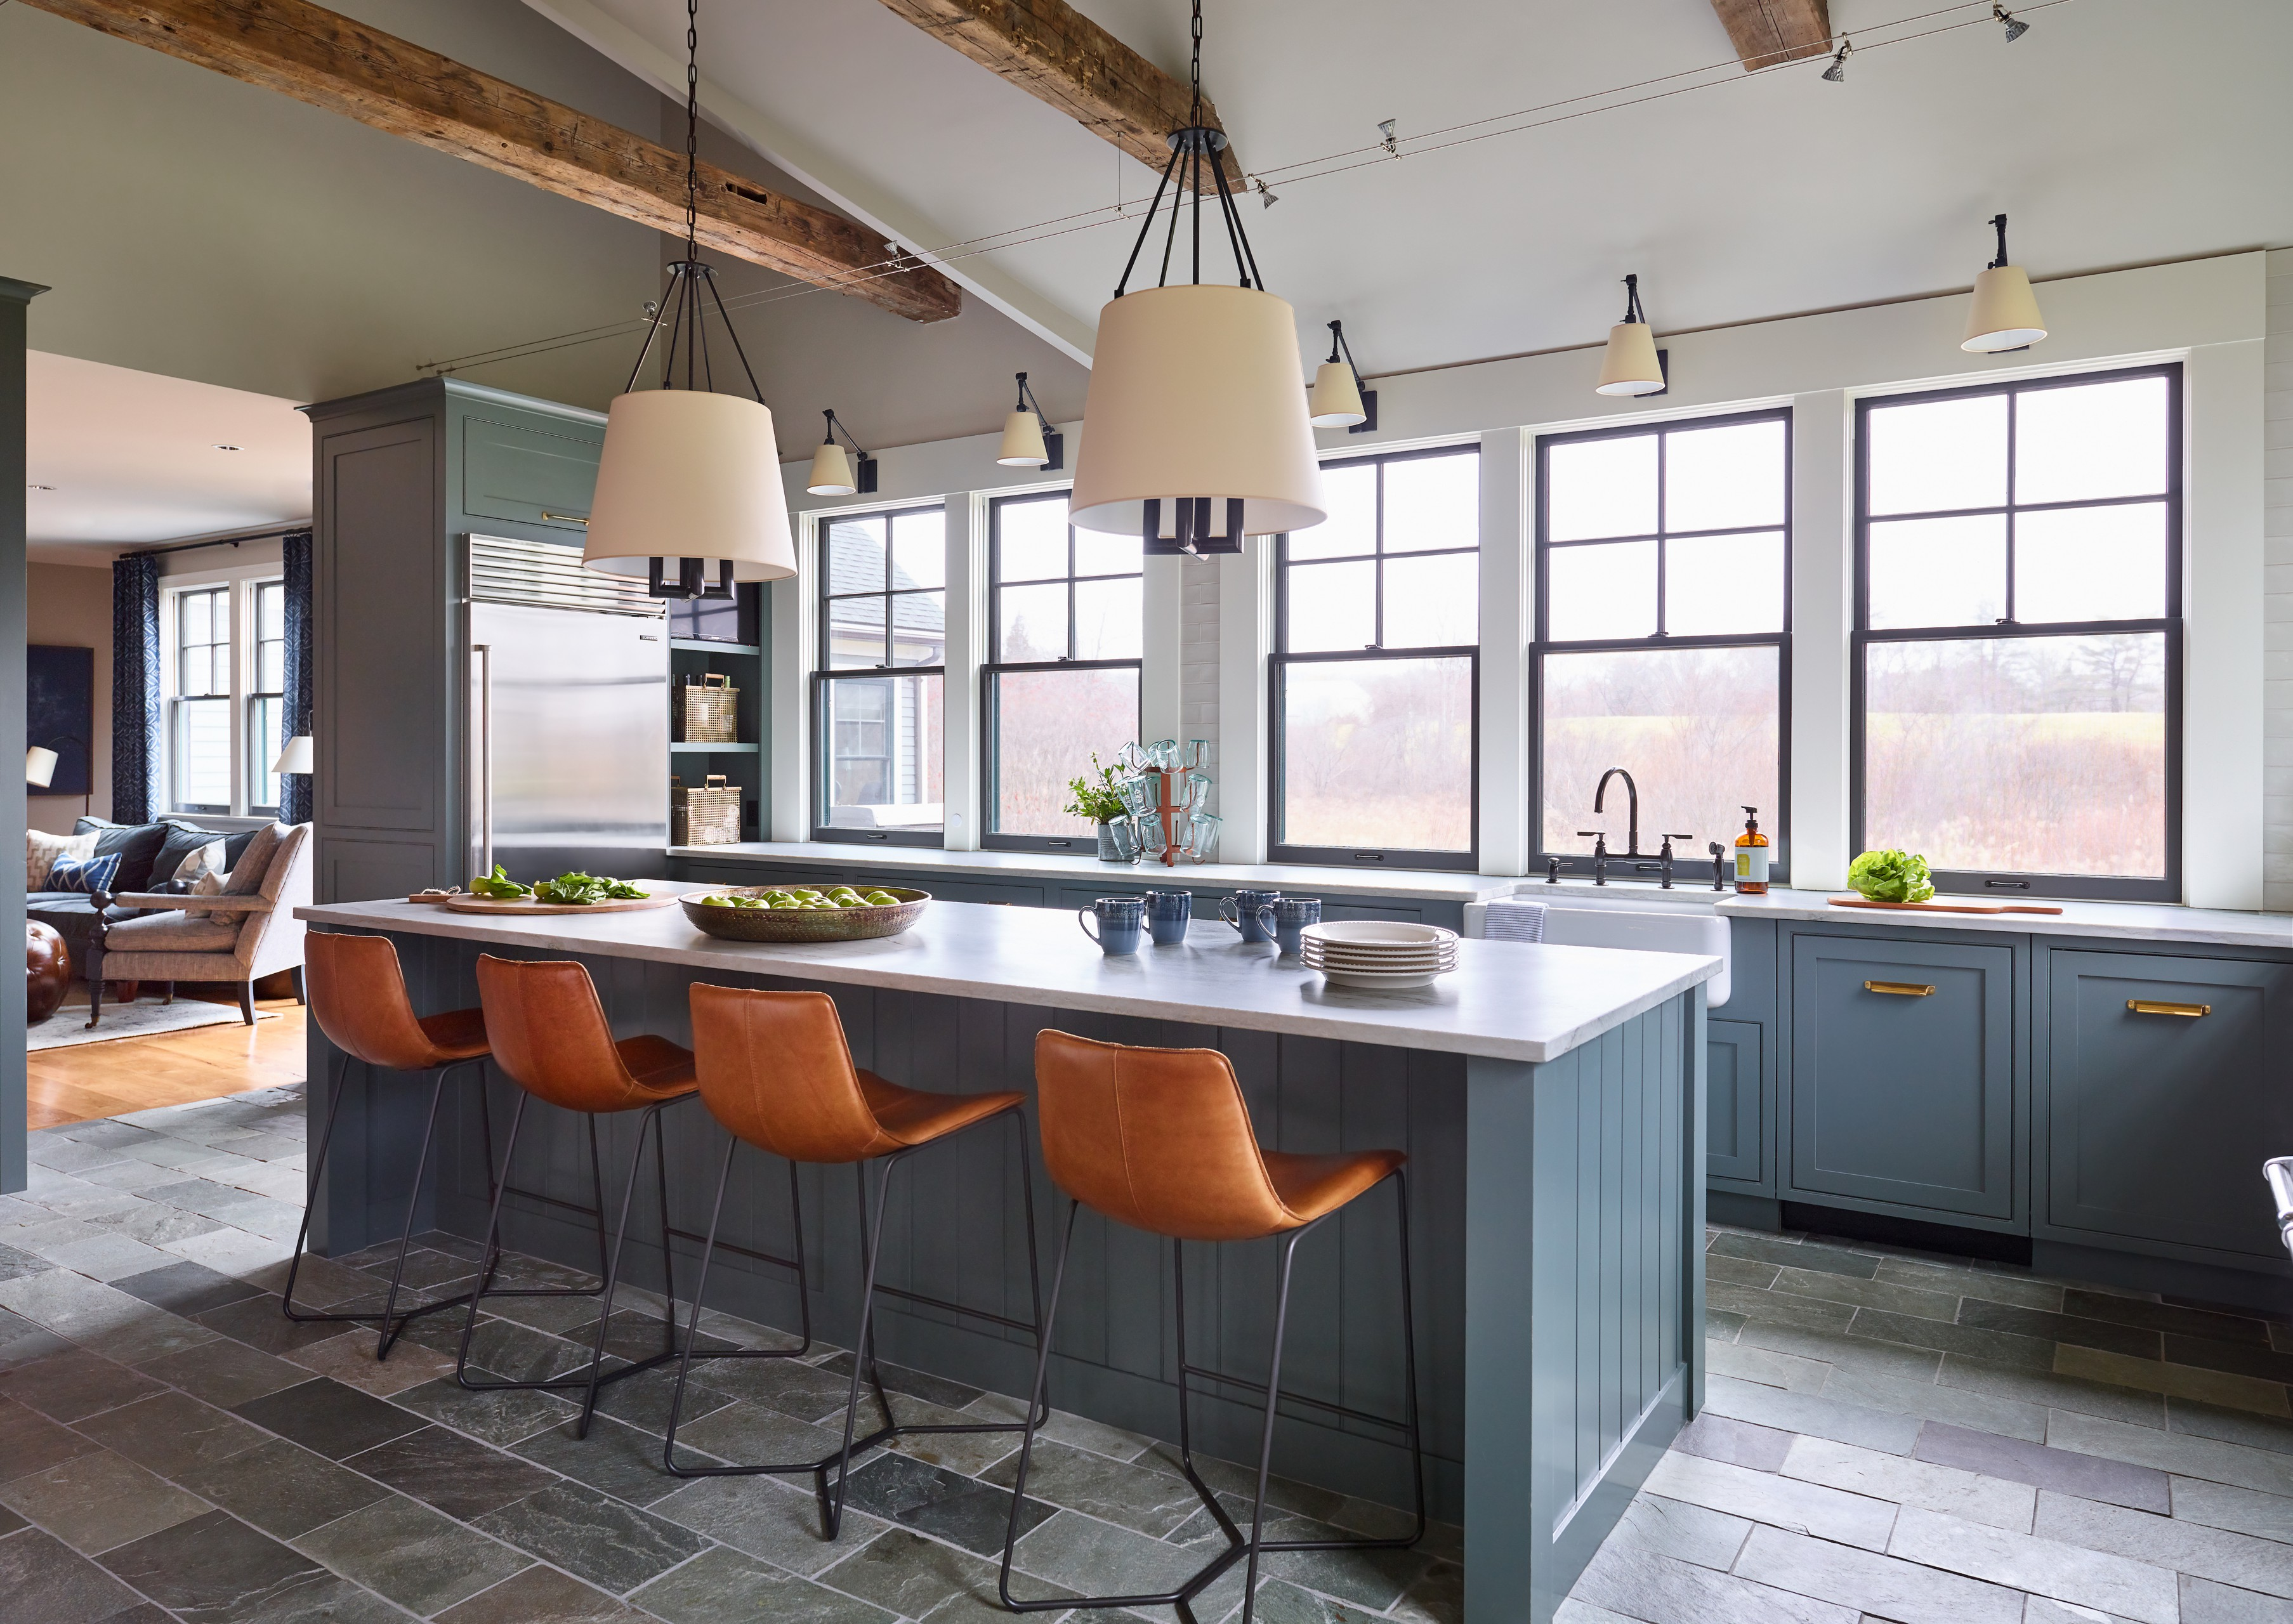 9 Beautiful Slate Floor Kitchen with Blue Cabinets Pictures ...